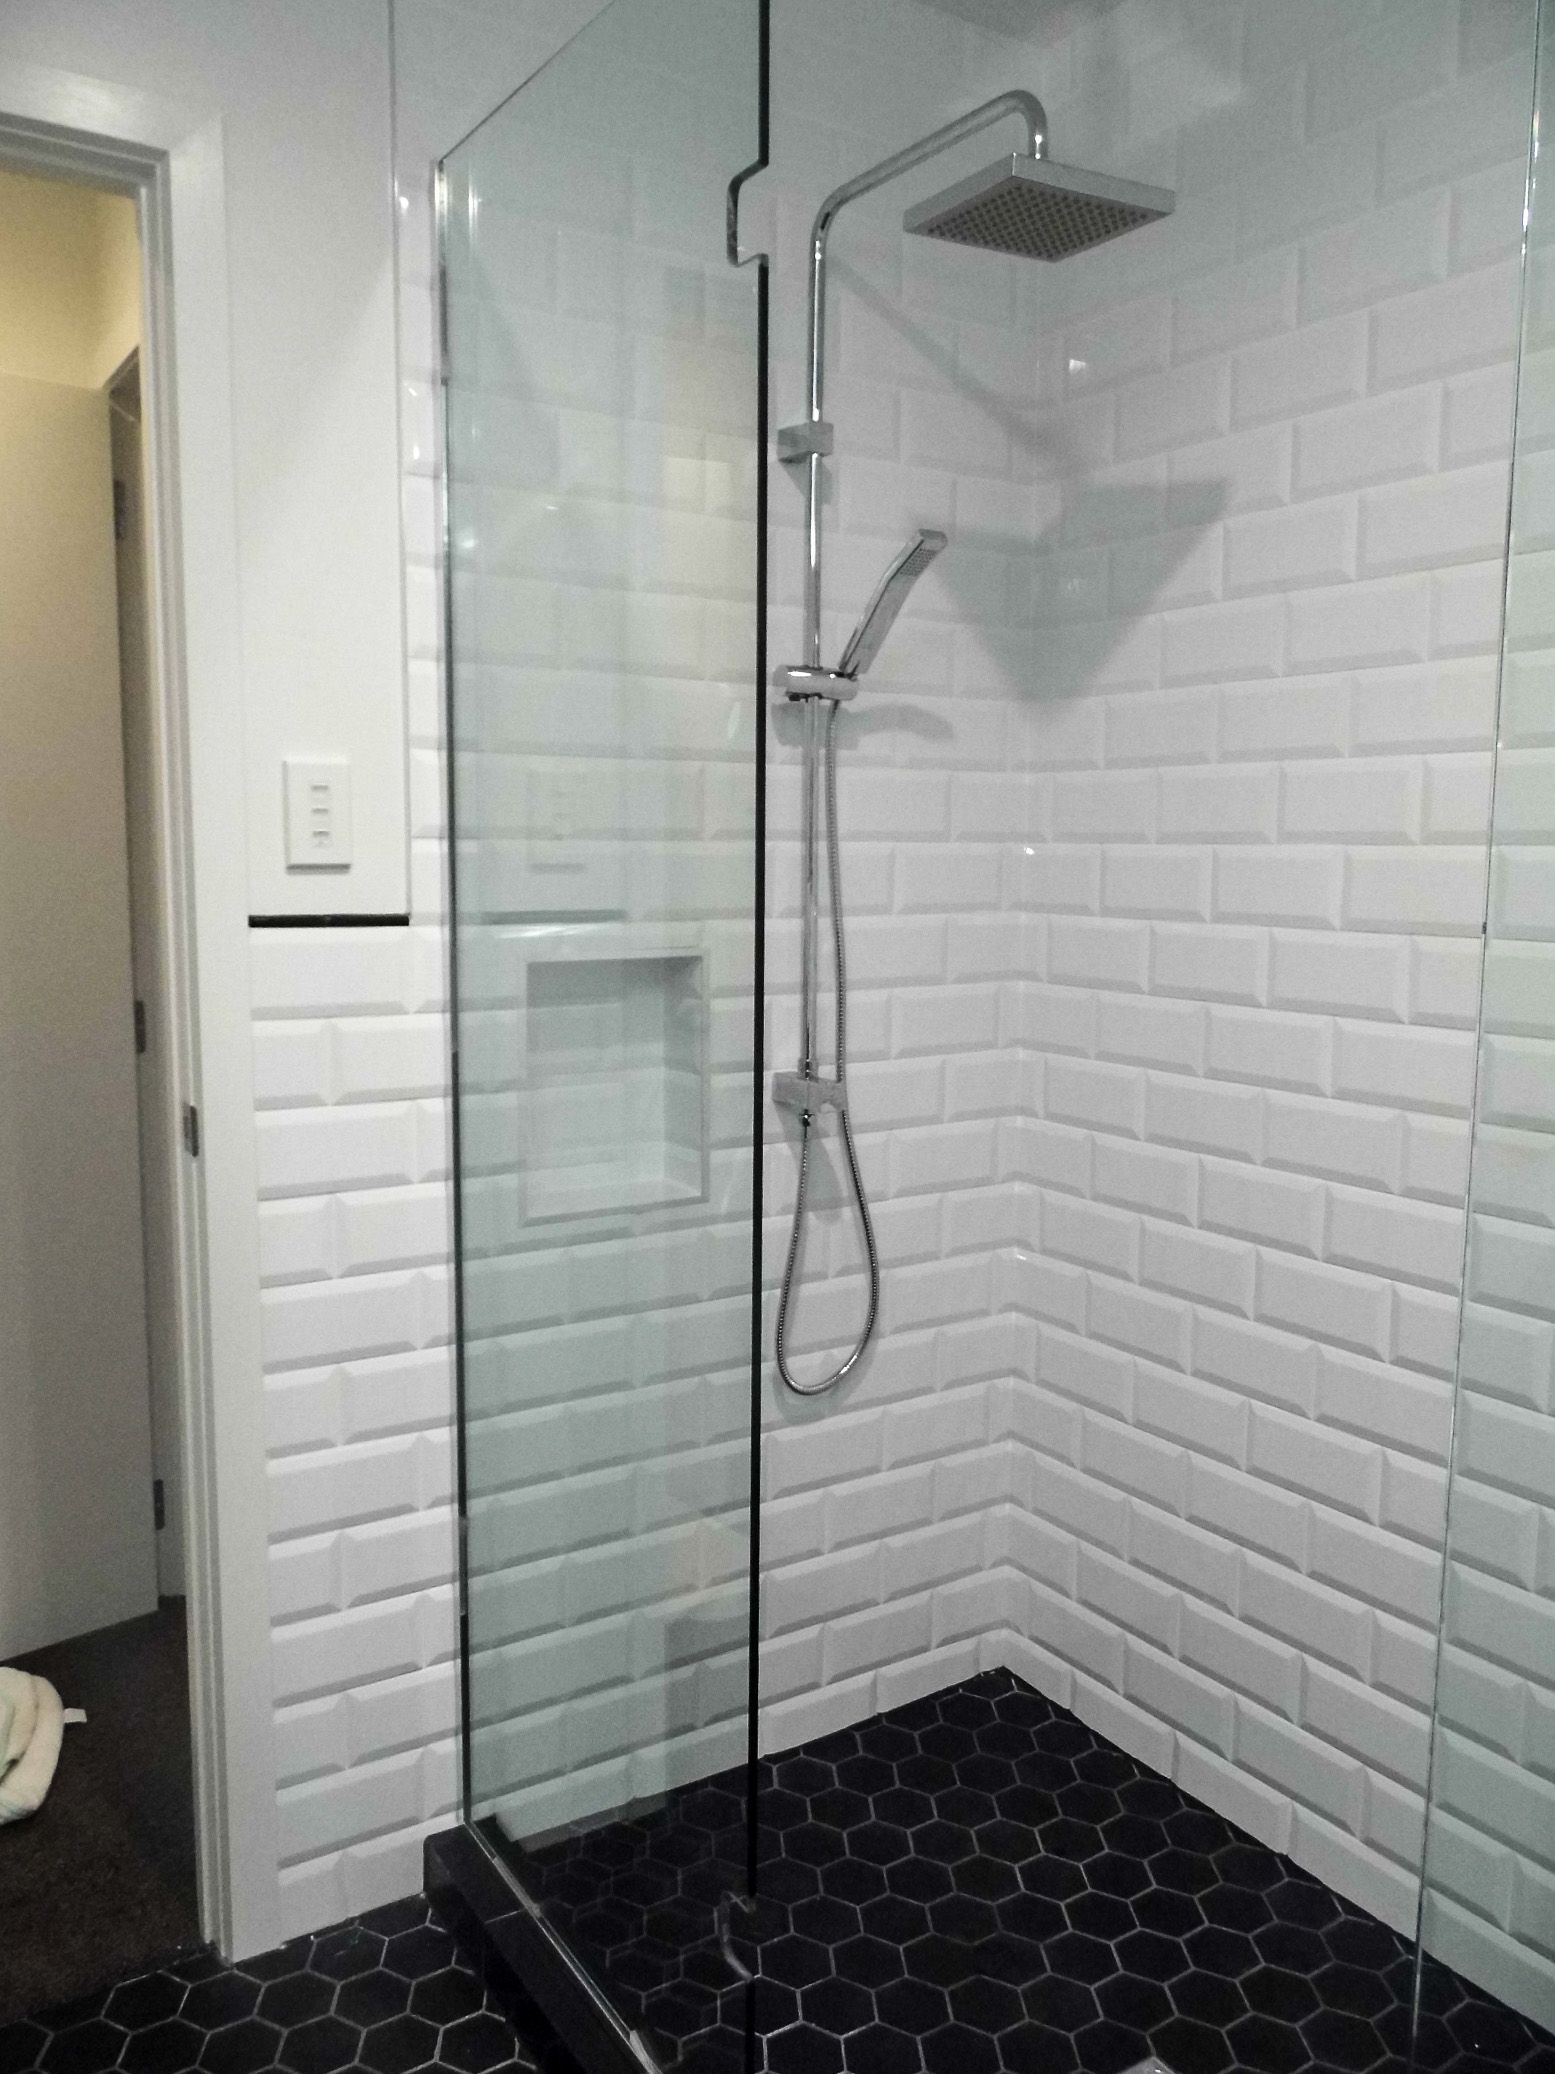 Charcoal bathroom tiles google search bathroom inspiration heritageimagesproductsbevelled wall tileswhite bevelled tiled shower and black hexagon floor tiles dailygadgetfo Gallery